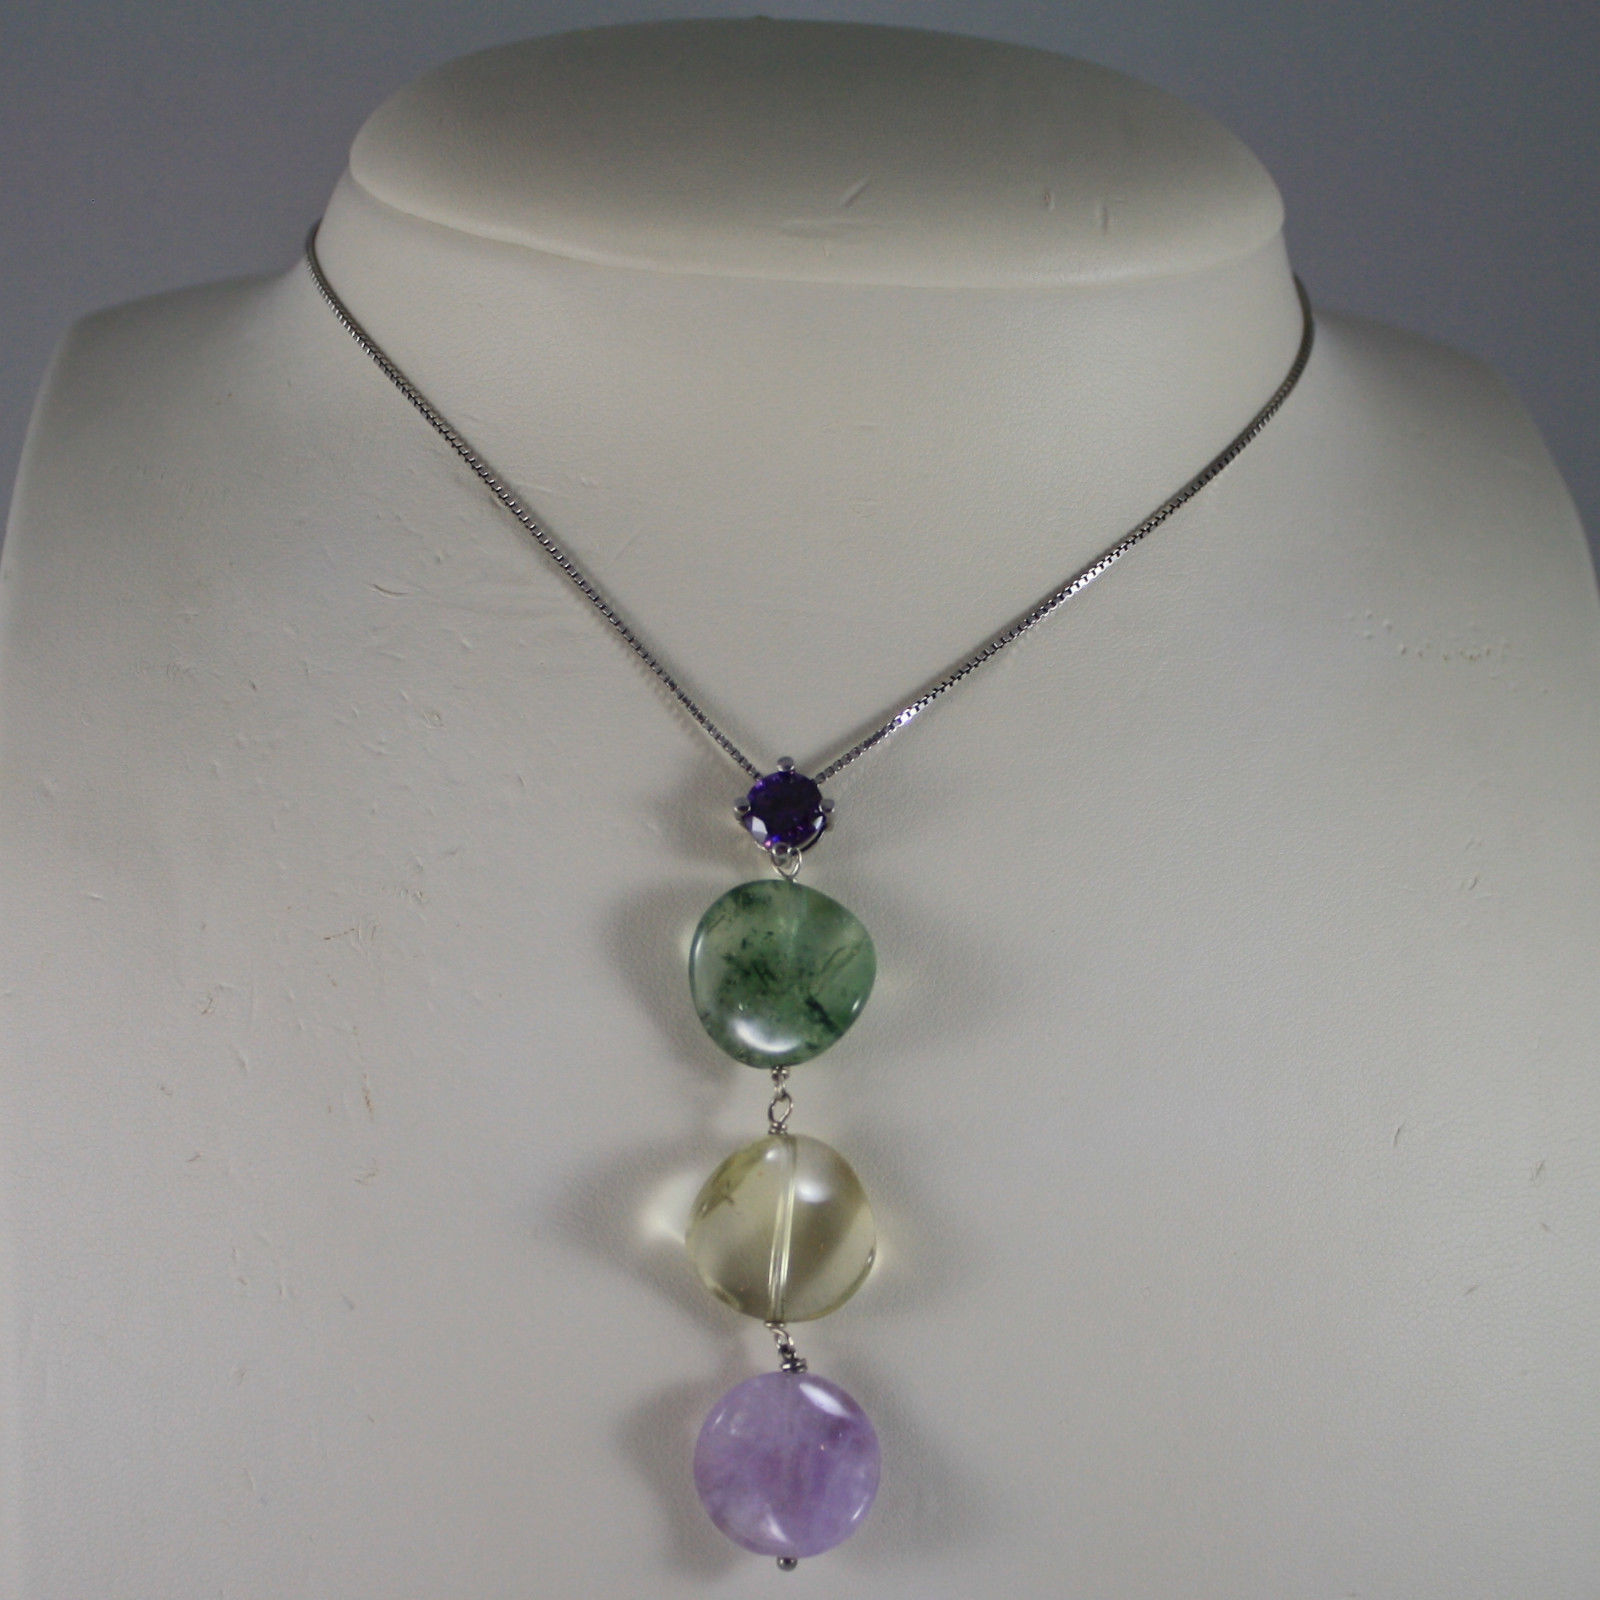 .925 SILVER RHODIUM NECKLACE WITH PURPLE CRYSTAL, AMETHYST AND QUARTZ